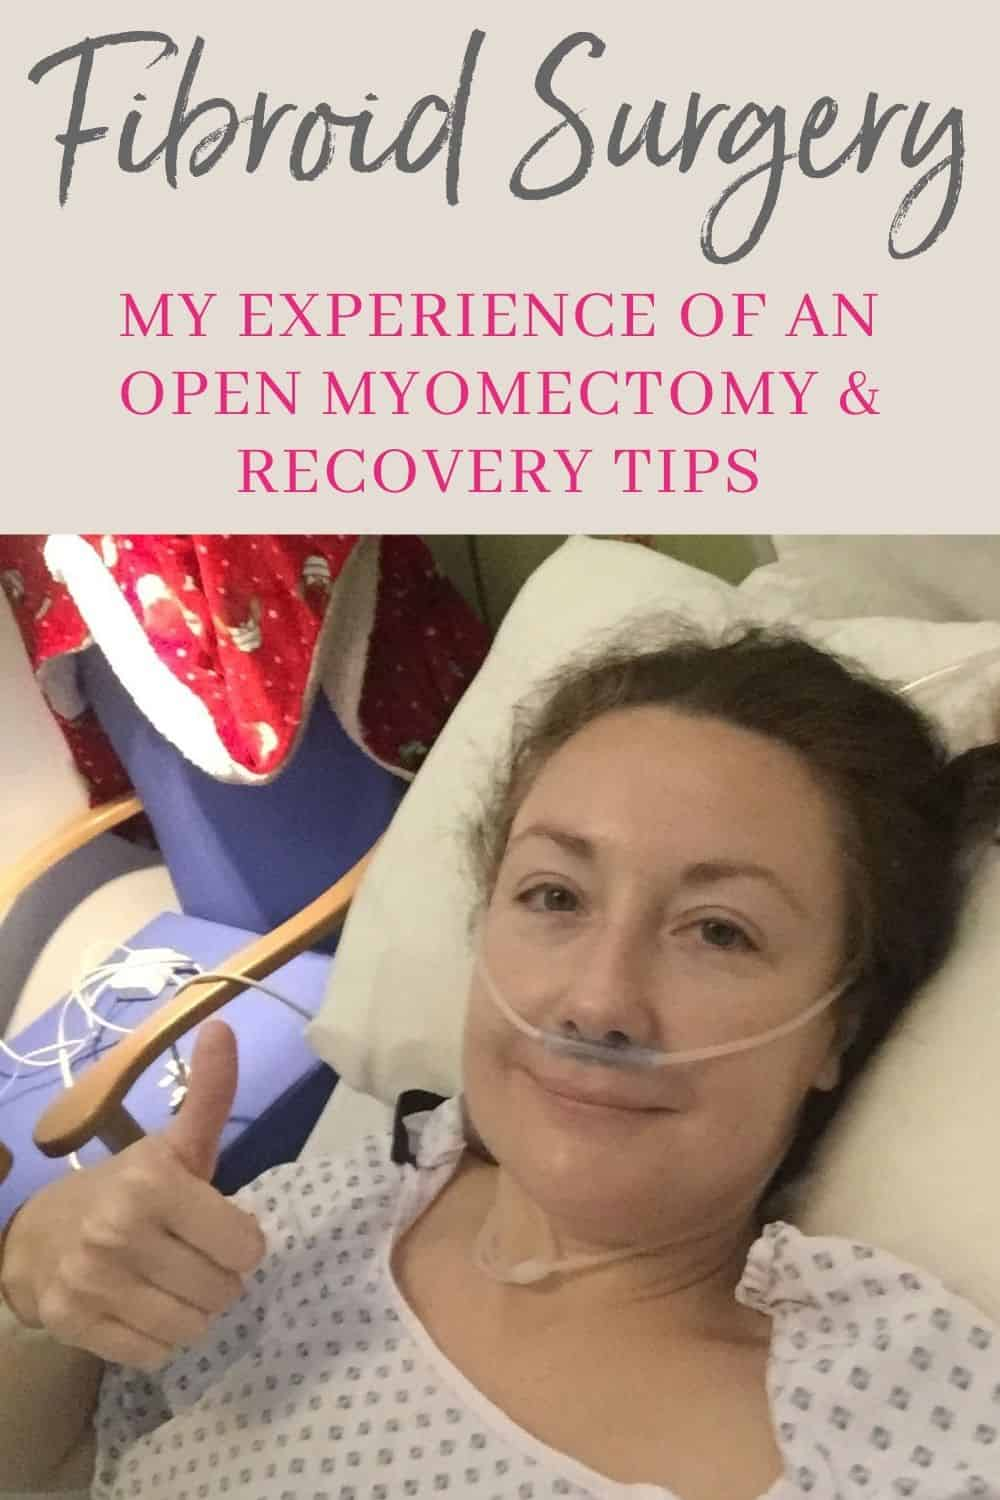 My experience of open myomectomy surgery to remove fibroids (and recovery tips).